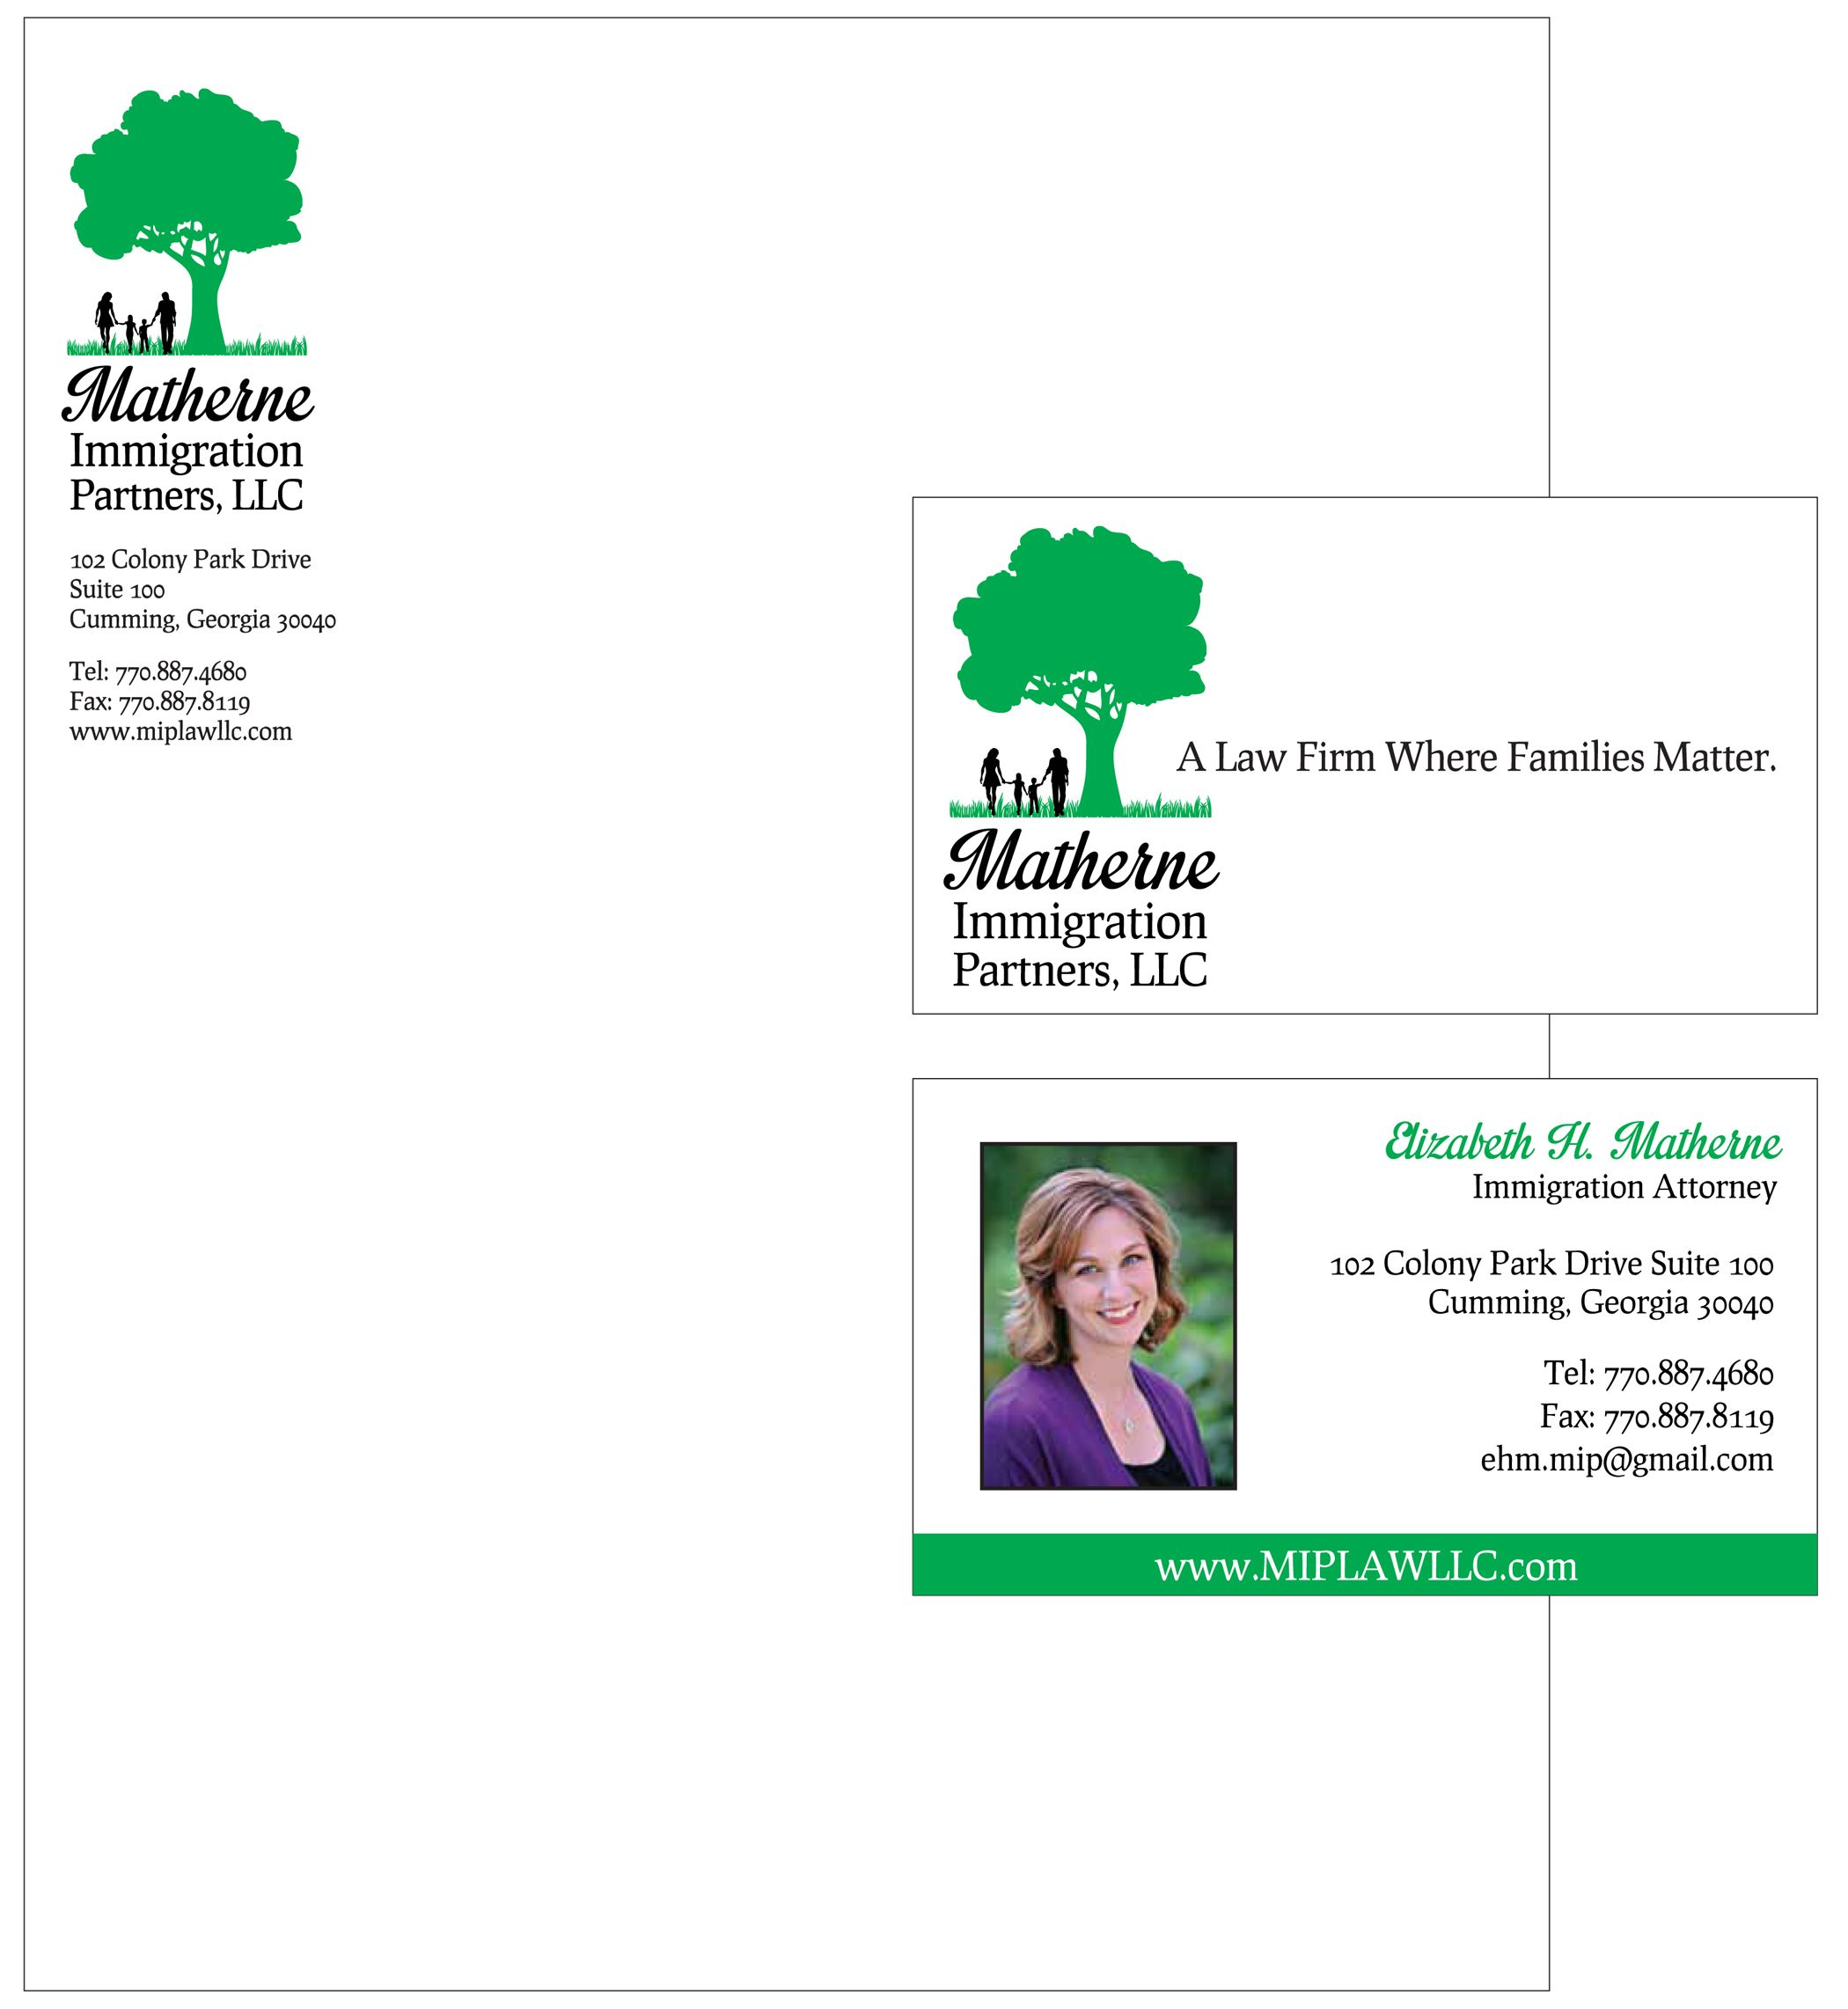 letterhead and business card designed for an atlanta immigration